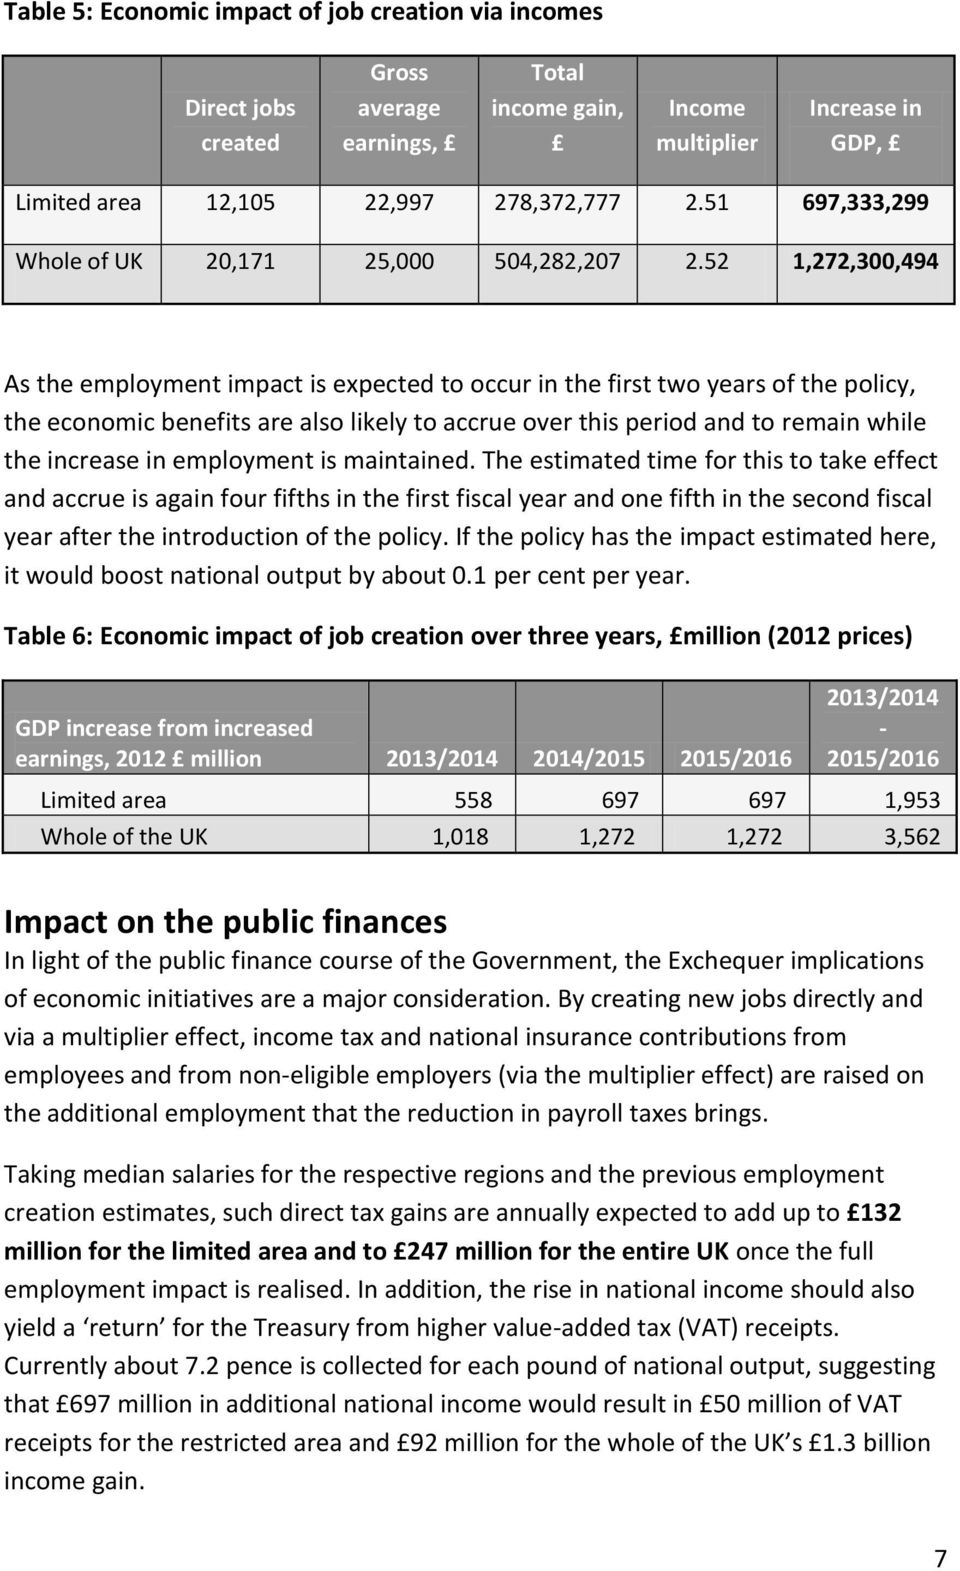 52 1,272,300,494 As the employment impact is expected to occur in the first two years of the policy, the economic benefits are also likely to accrue over this period and to remain while the increase